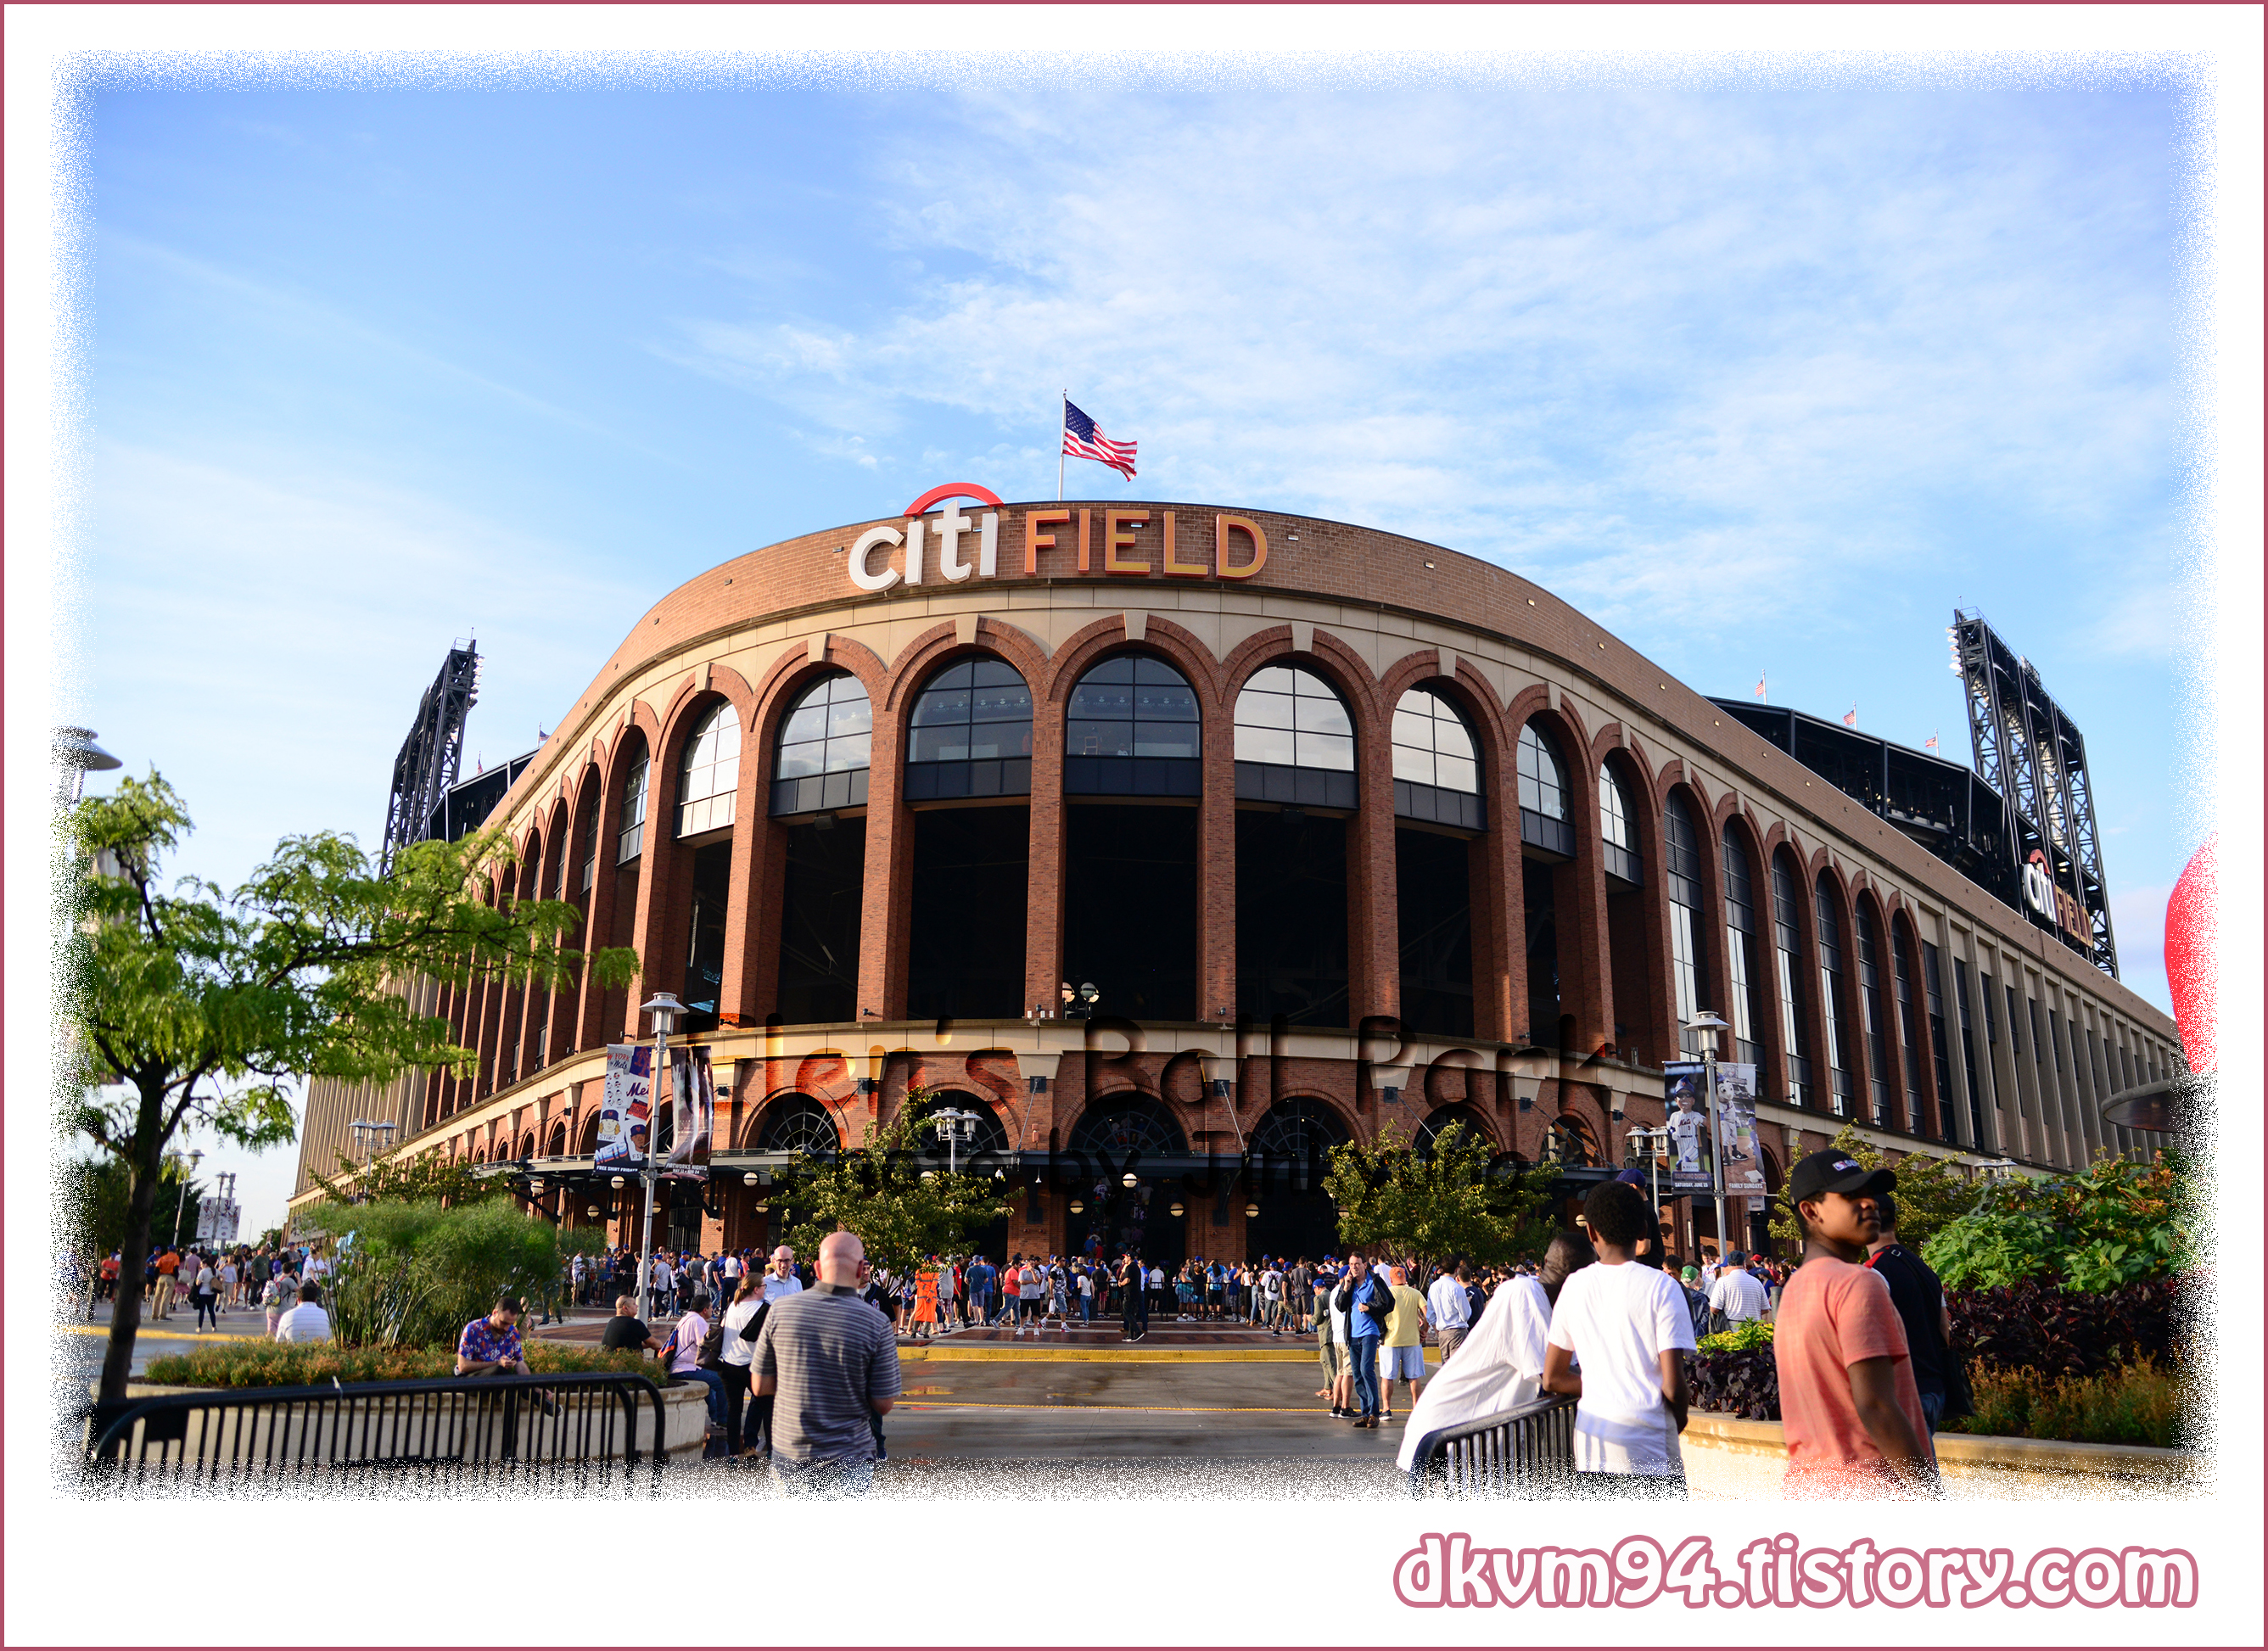 [MLB TOUR(26)] 시티 필드 : 뉴욕 메츠의 홈구장 (Citi Field : Home of the New York Mets)